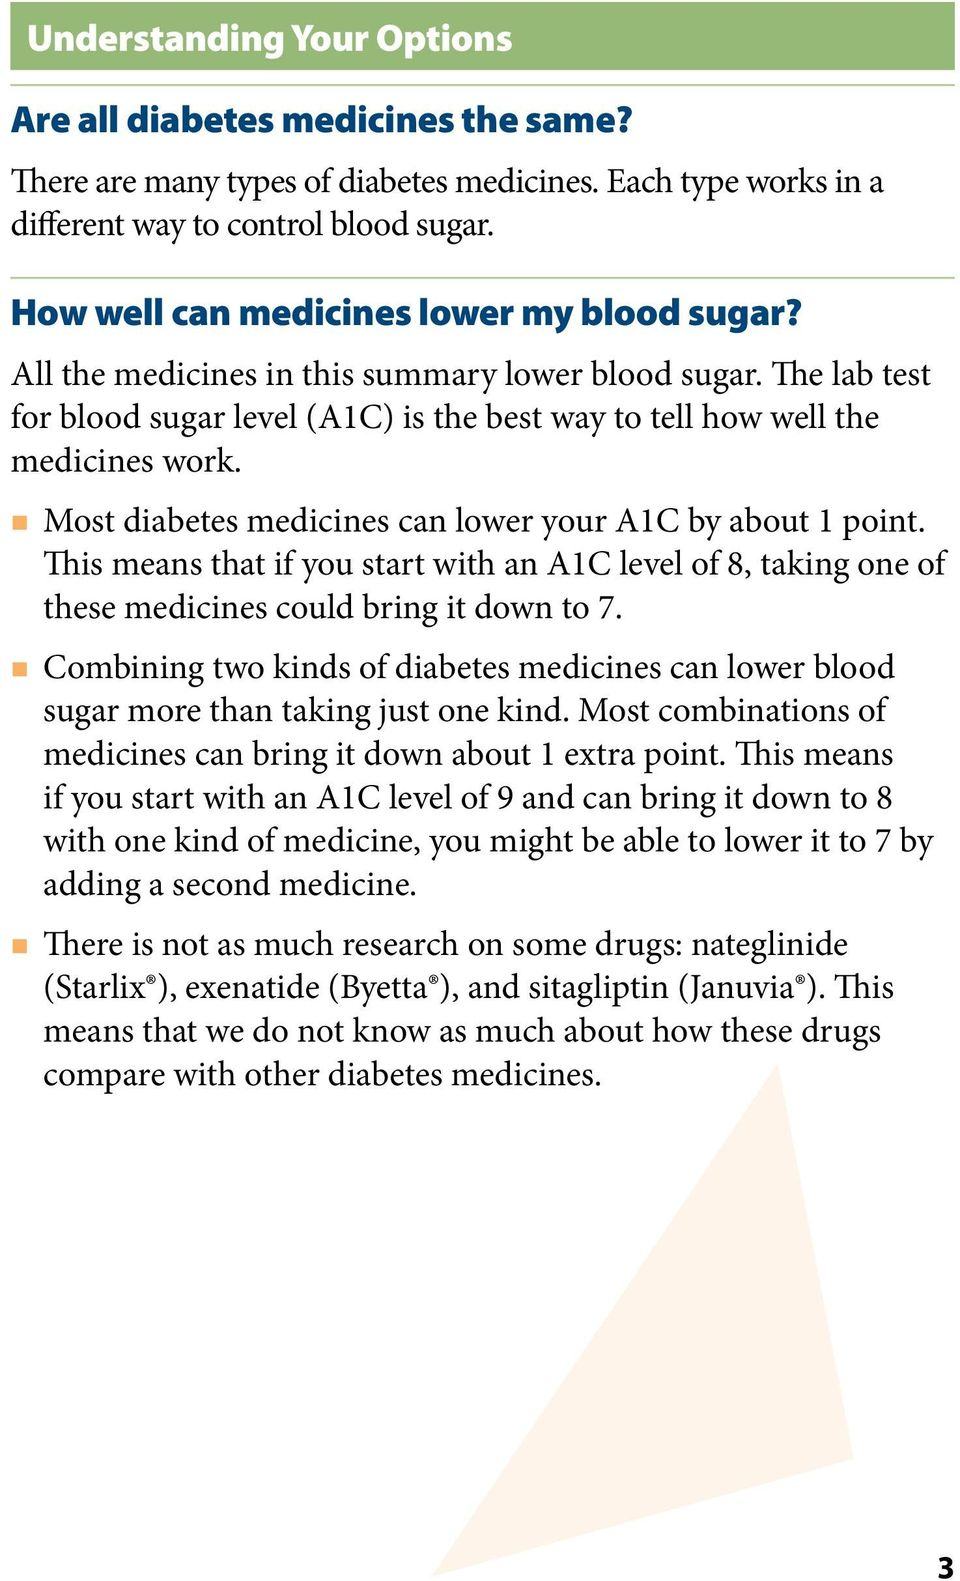 Most diabetes medicines can lower your A1C by about 1 point. This means that if you start with an A1C level of 8, taking one of these medicines could bring it down to 7.